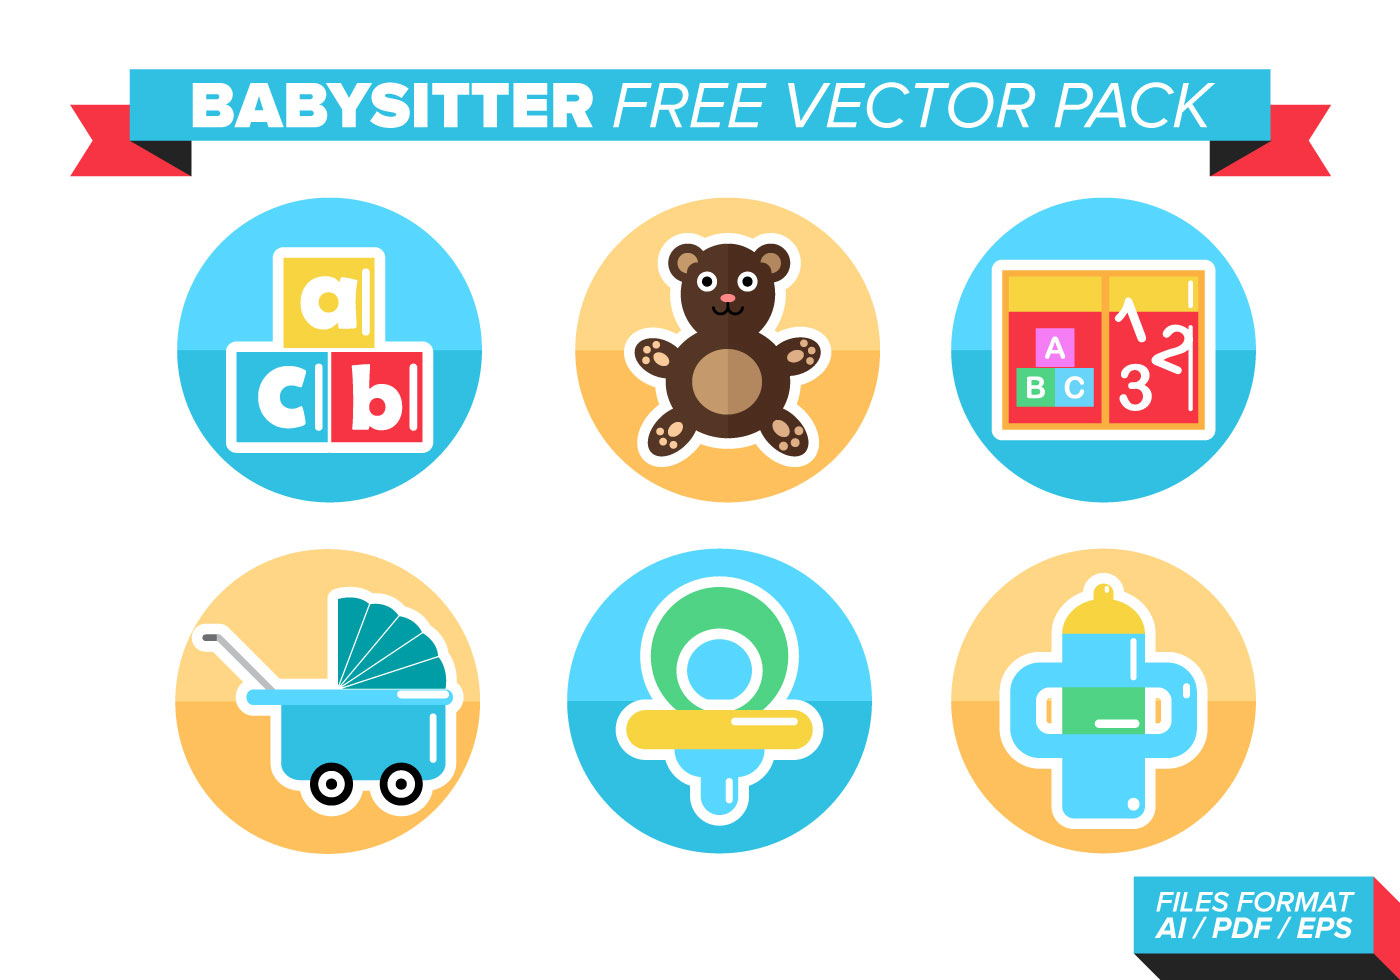 Babysitter Free Vector Pack Download Free Vector Art